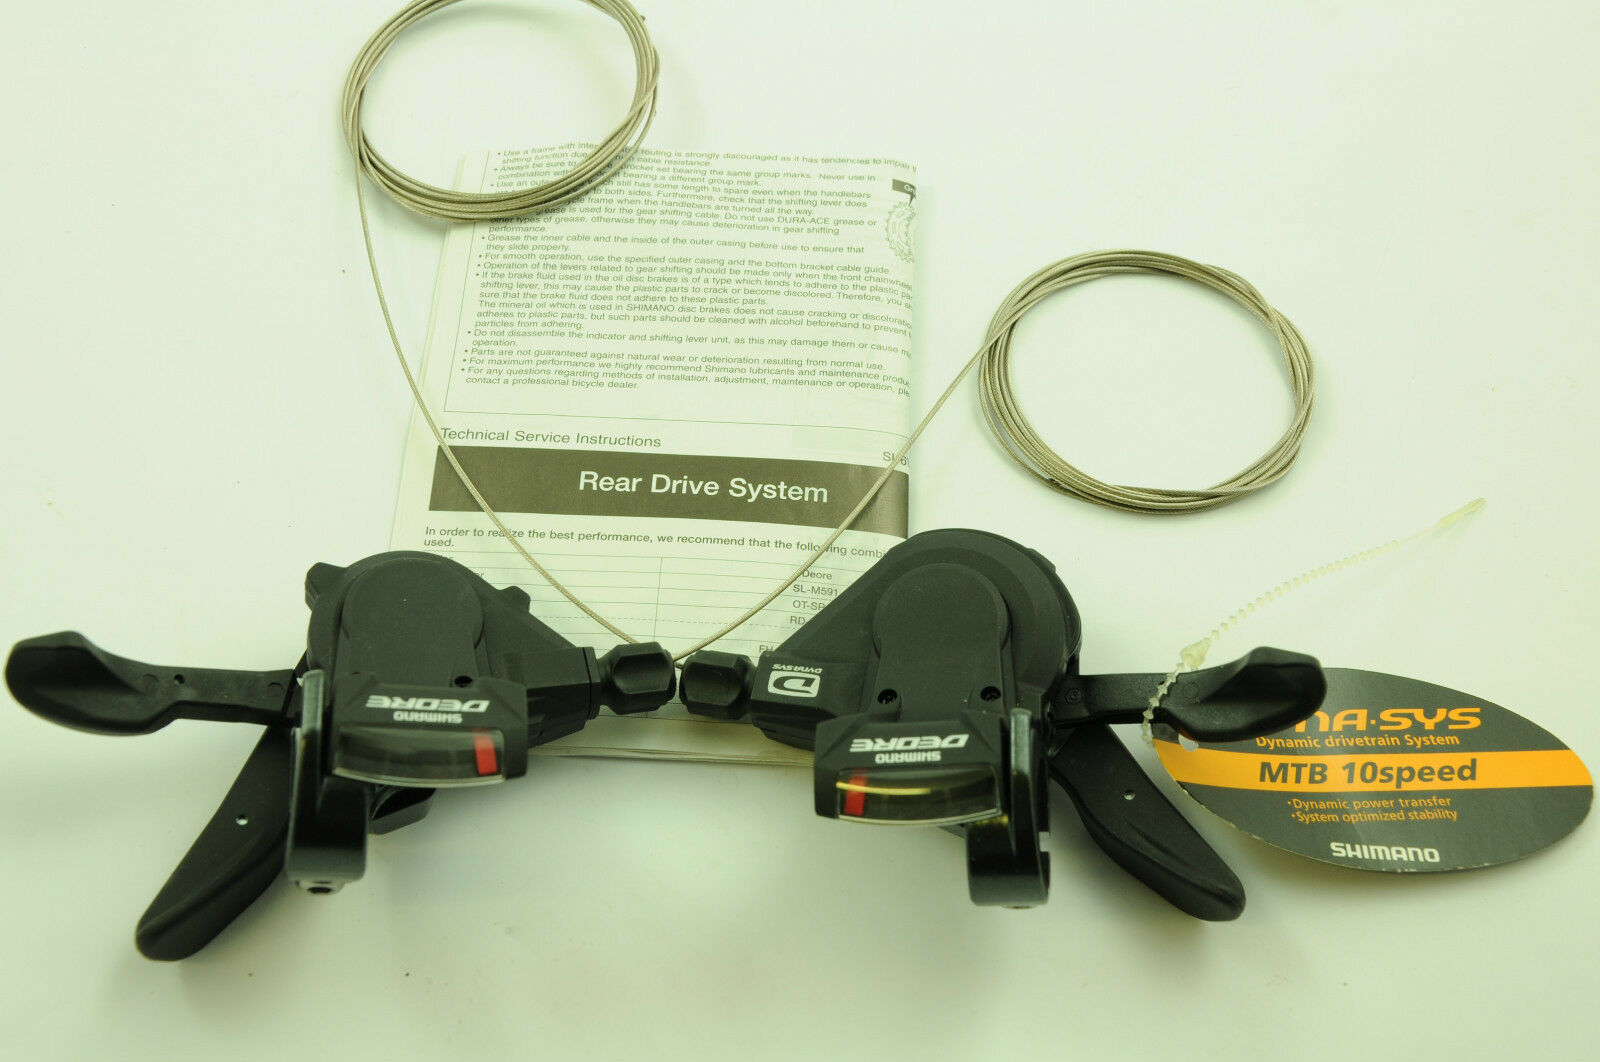 PAIR (R & L) SHIMANO SL-M591 DEORE 30 SPD (10x3)  DYNA-SYSTEM RAPID FIRE SHIFTER  welcome to buy